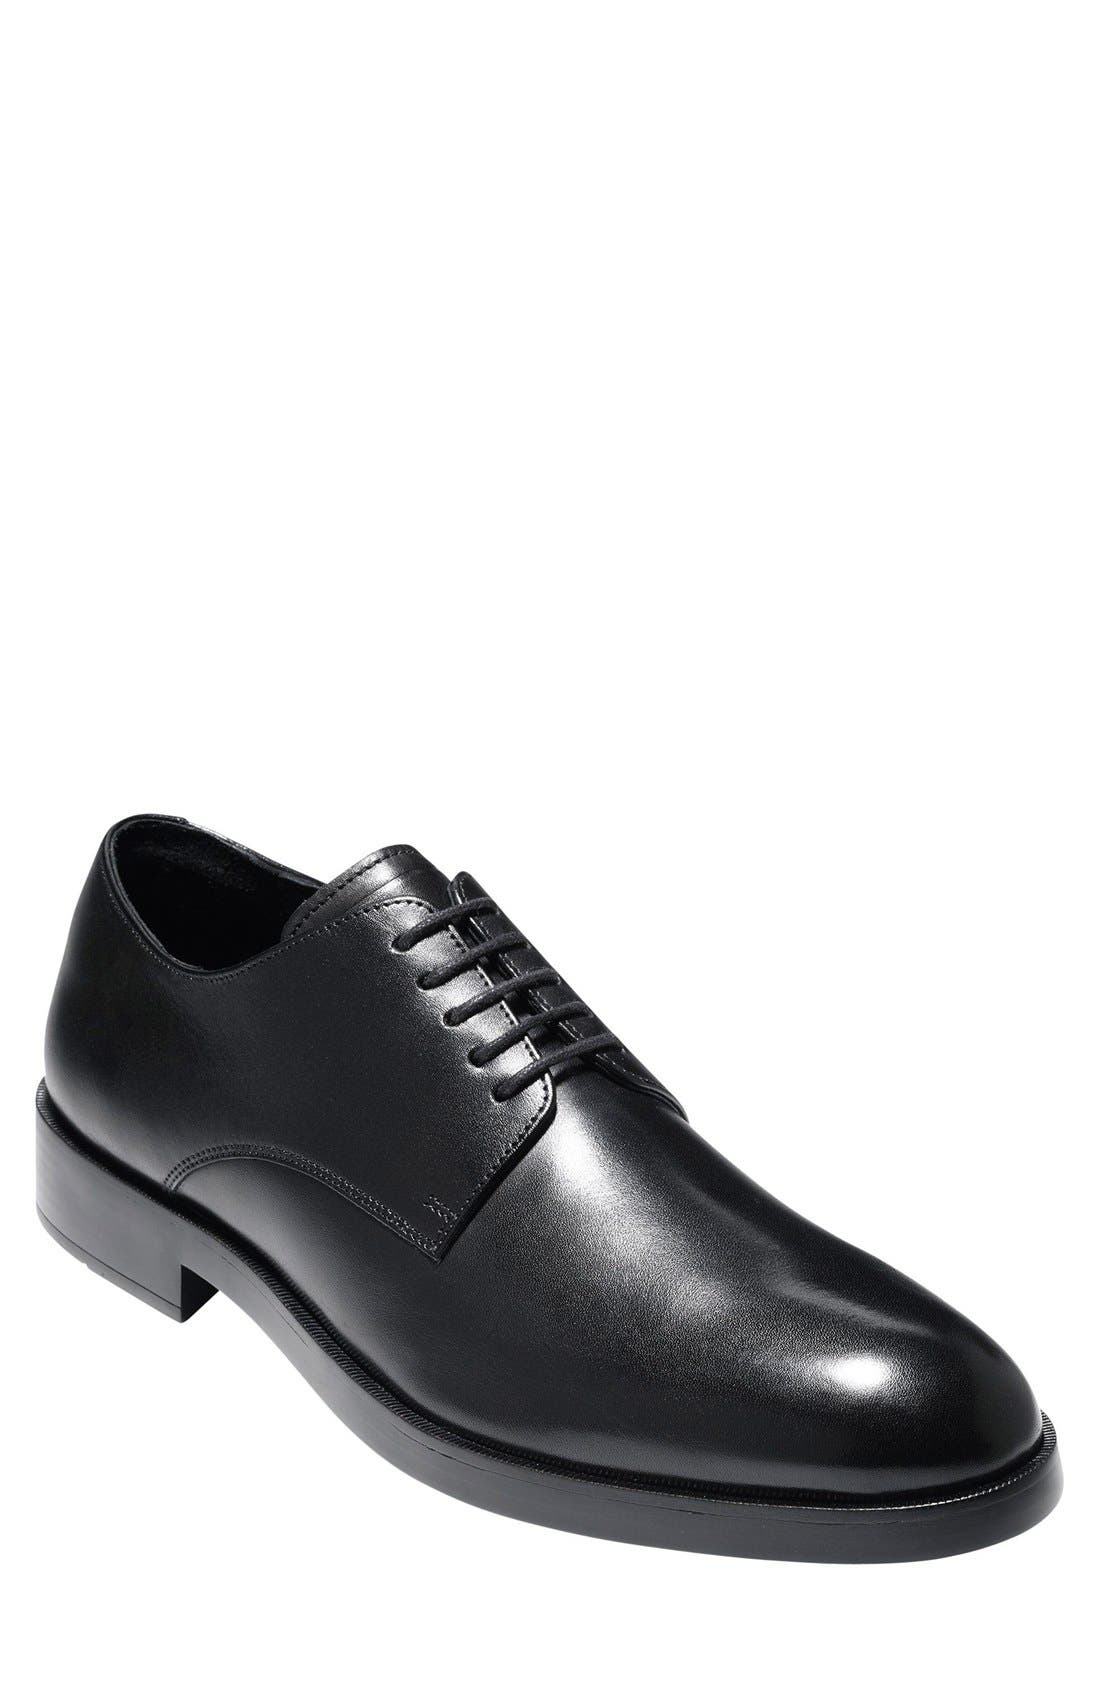 'Harrison Grand' Plain Toe Derby,                             Alternate thumbnail 11, color,                             BLACK